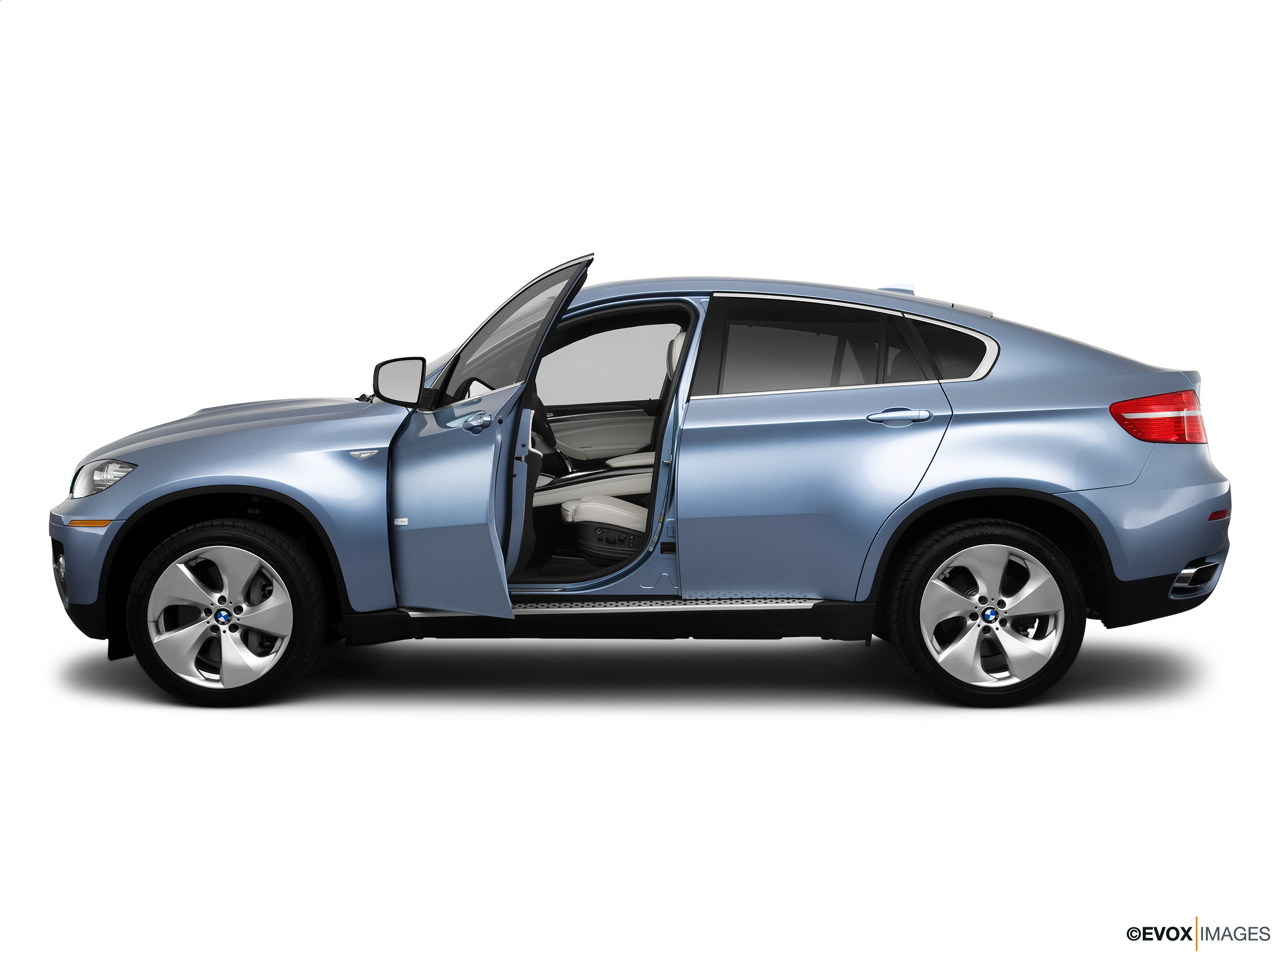 2010 BMW X6 Hybrid Base Driver's side profile with drivers side door open.